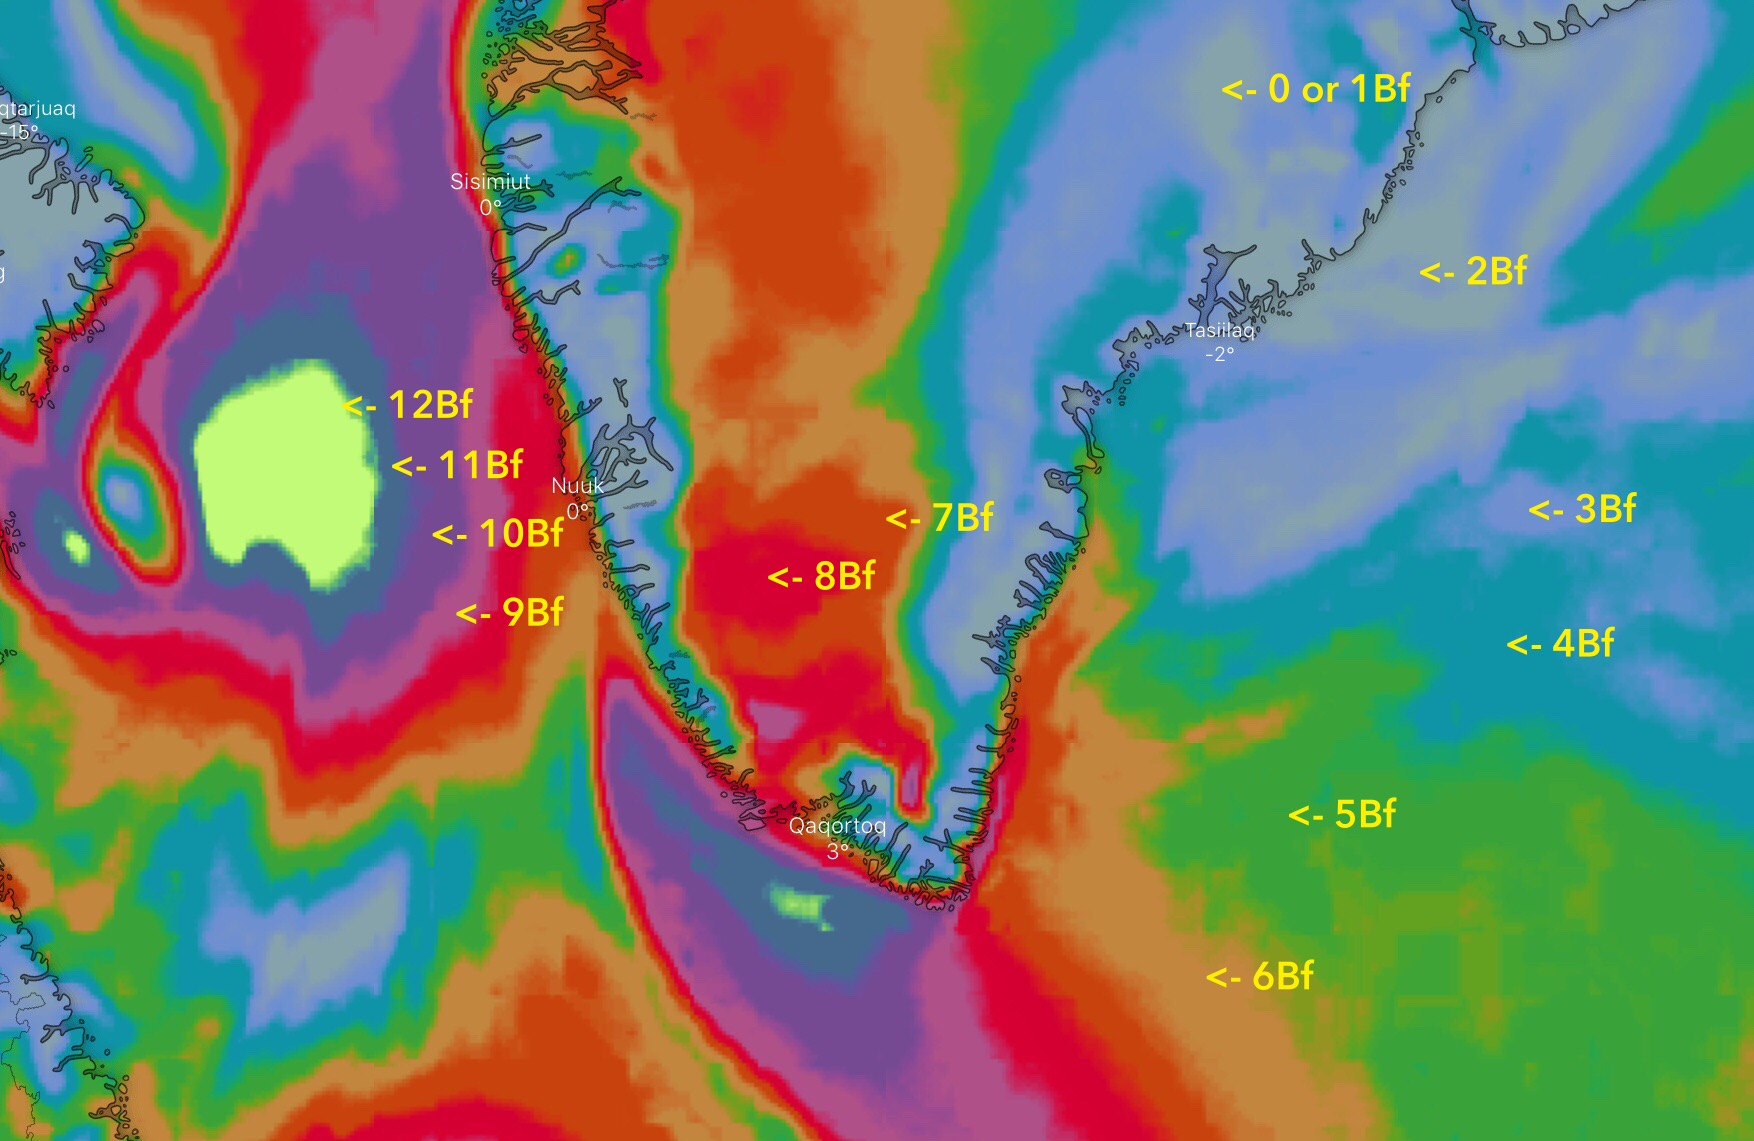 Beaufort Wind Color Scale on Windy